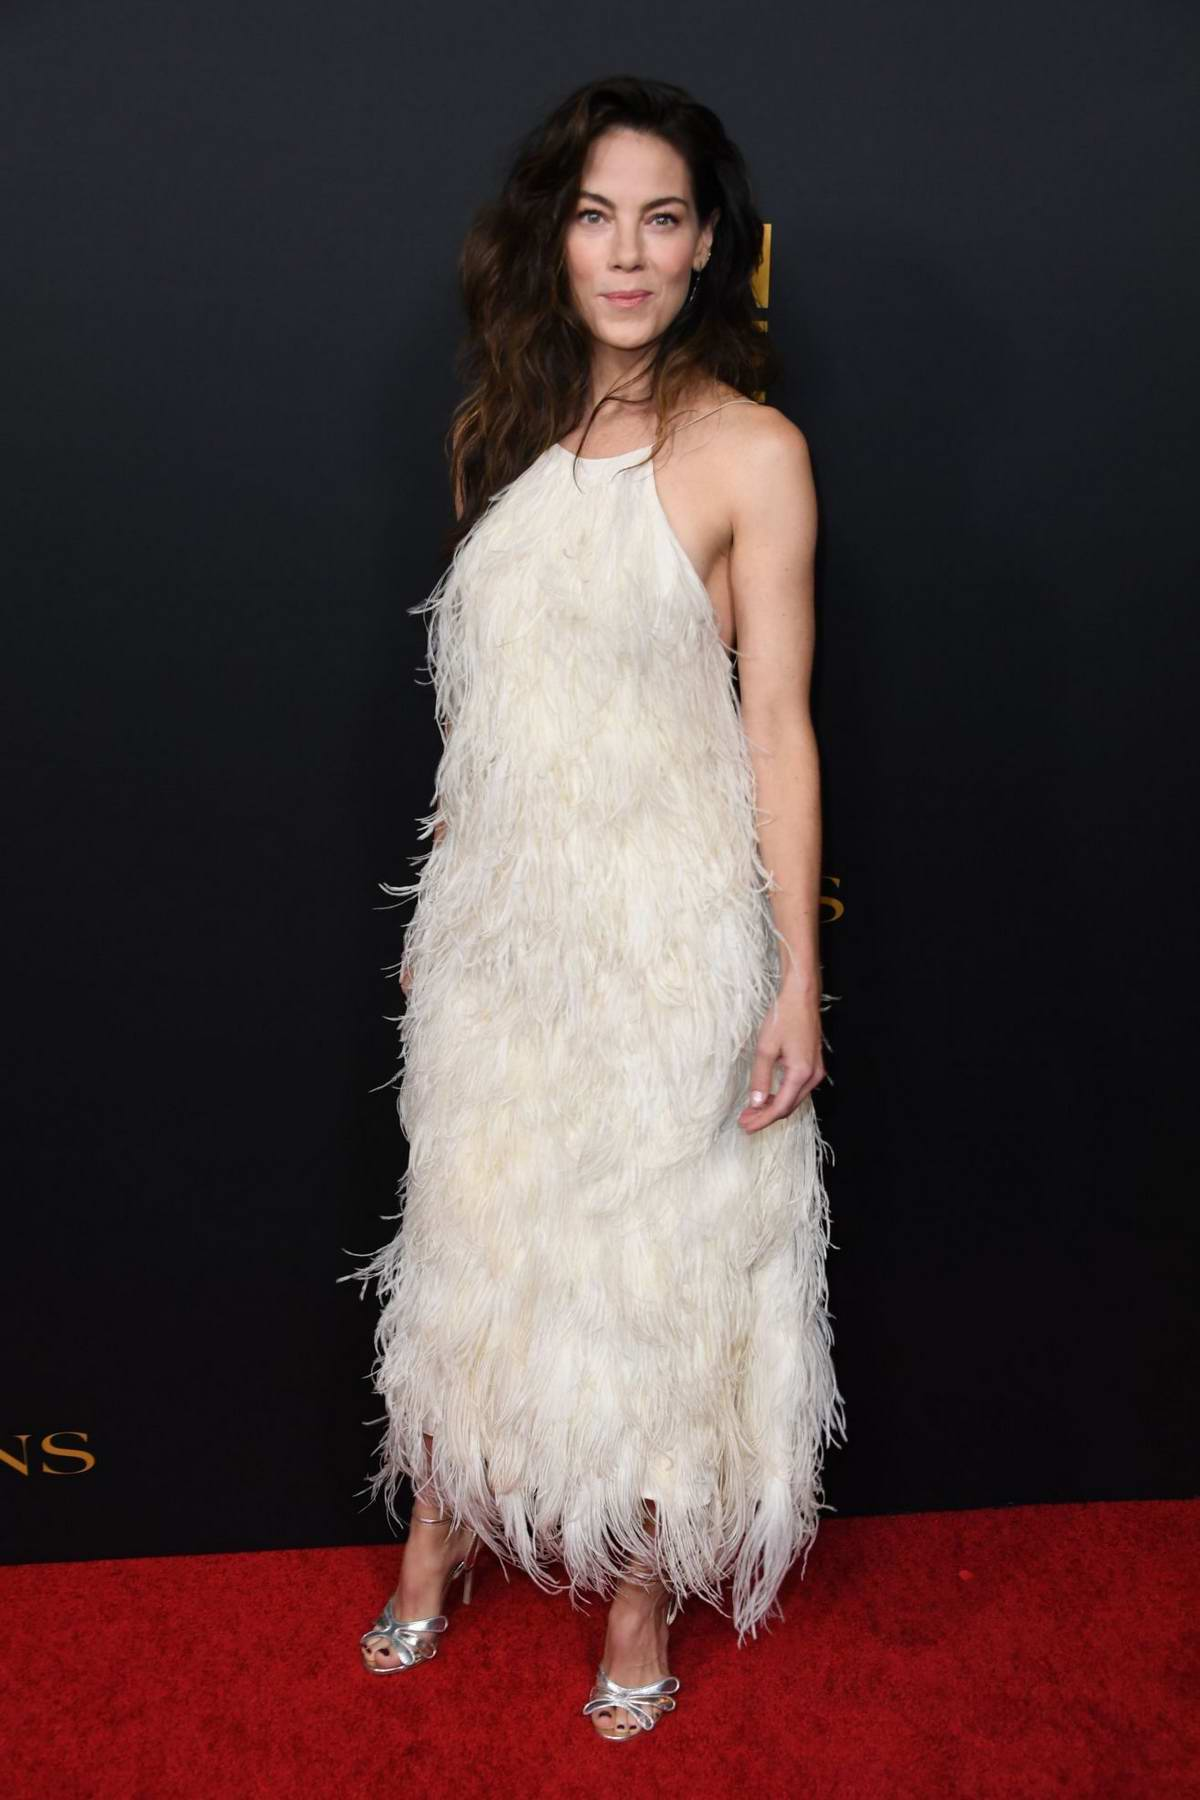 Michelle Monaghan attends the Golden Globe Ambassador Launch Party in Los Angeles